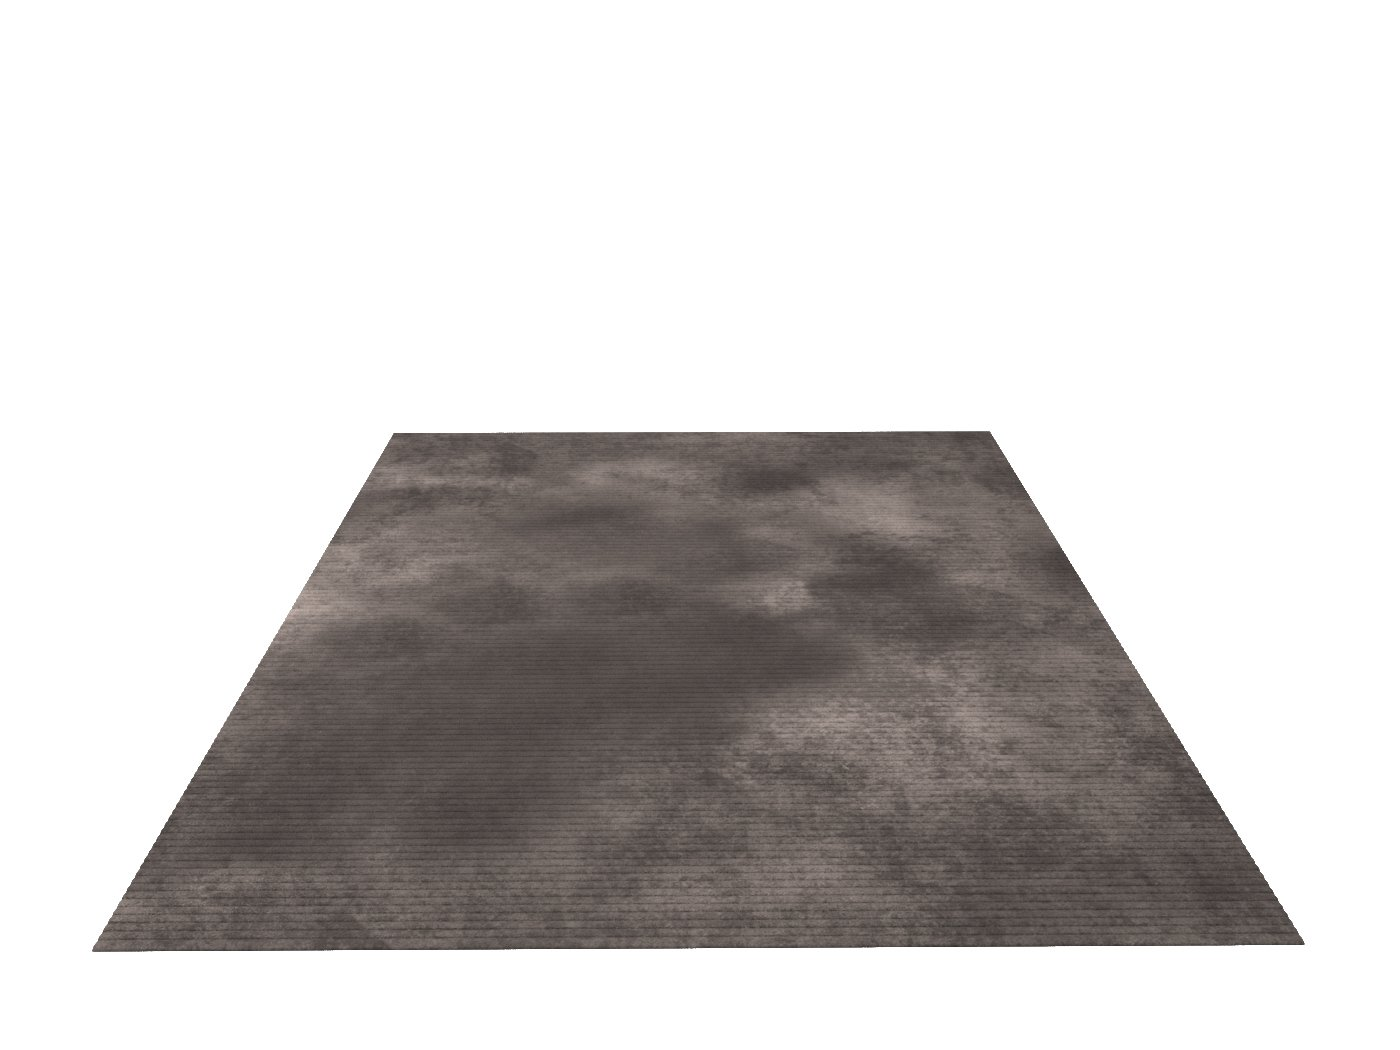 3d Carpet Taupe Piazzo Leroy Merlin Model 3d Model In Other